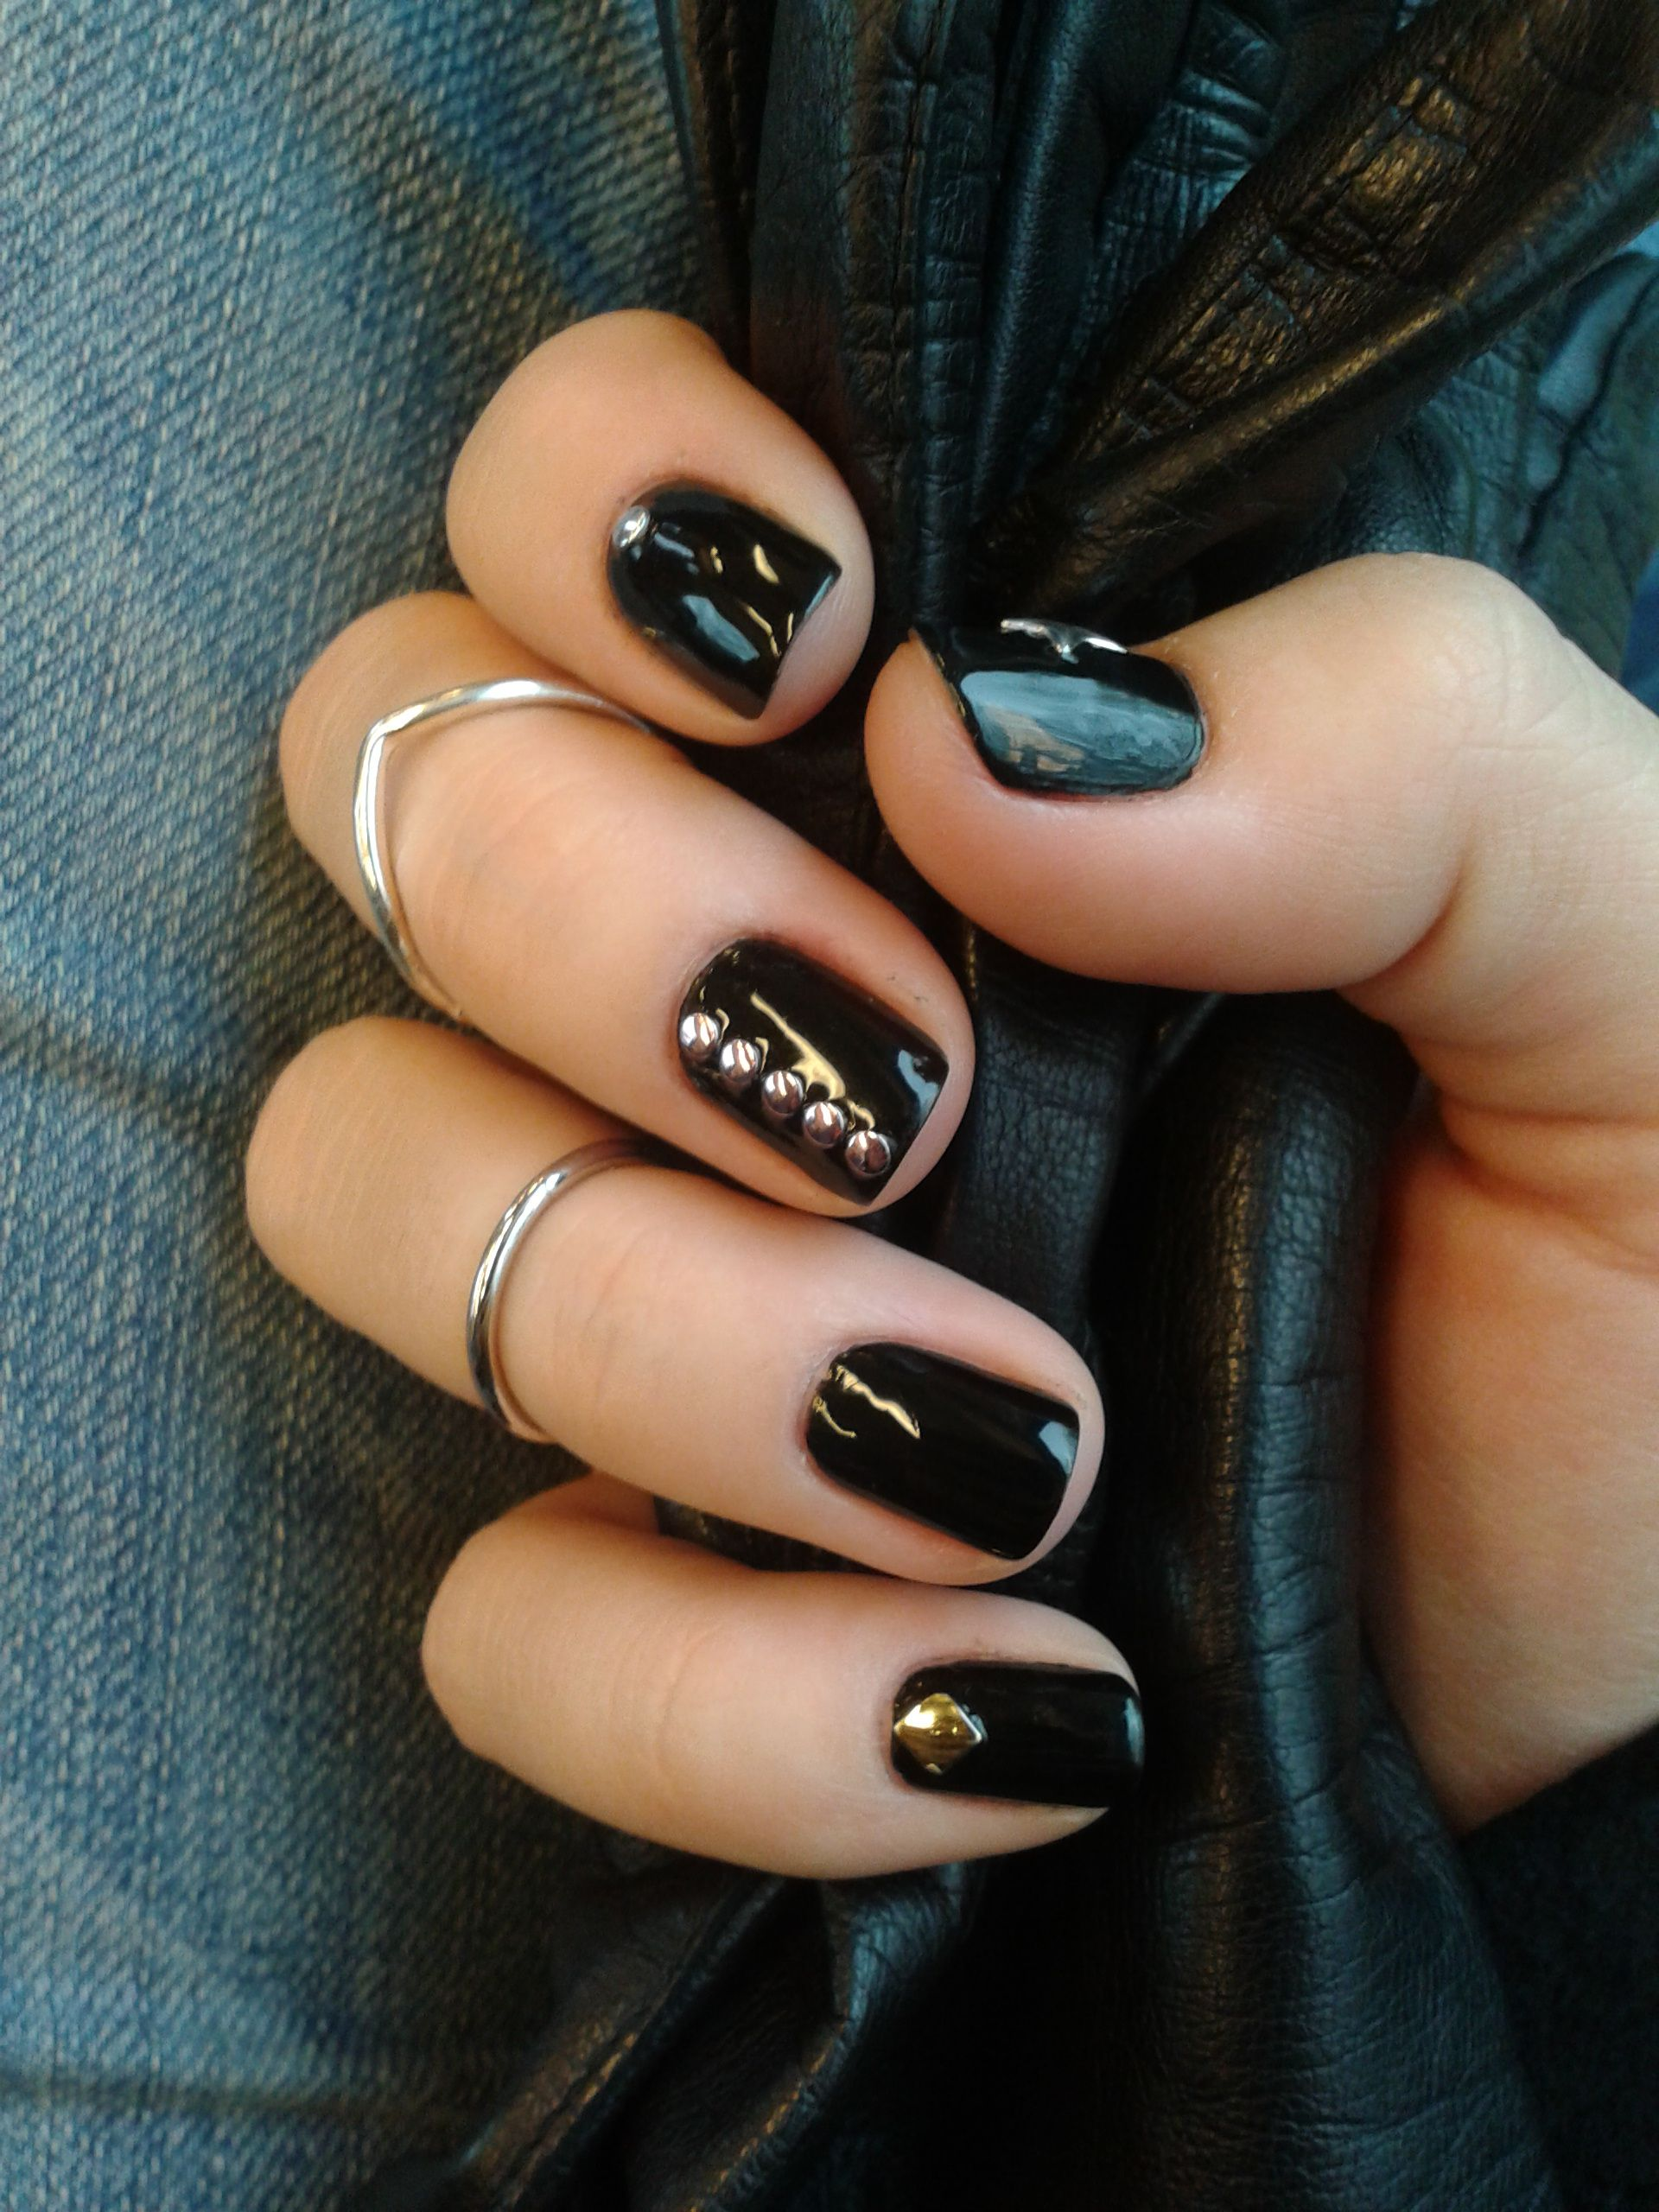 Simple Black Nail Art | Nail Art | Pinterest | Black nail ...